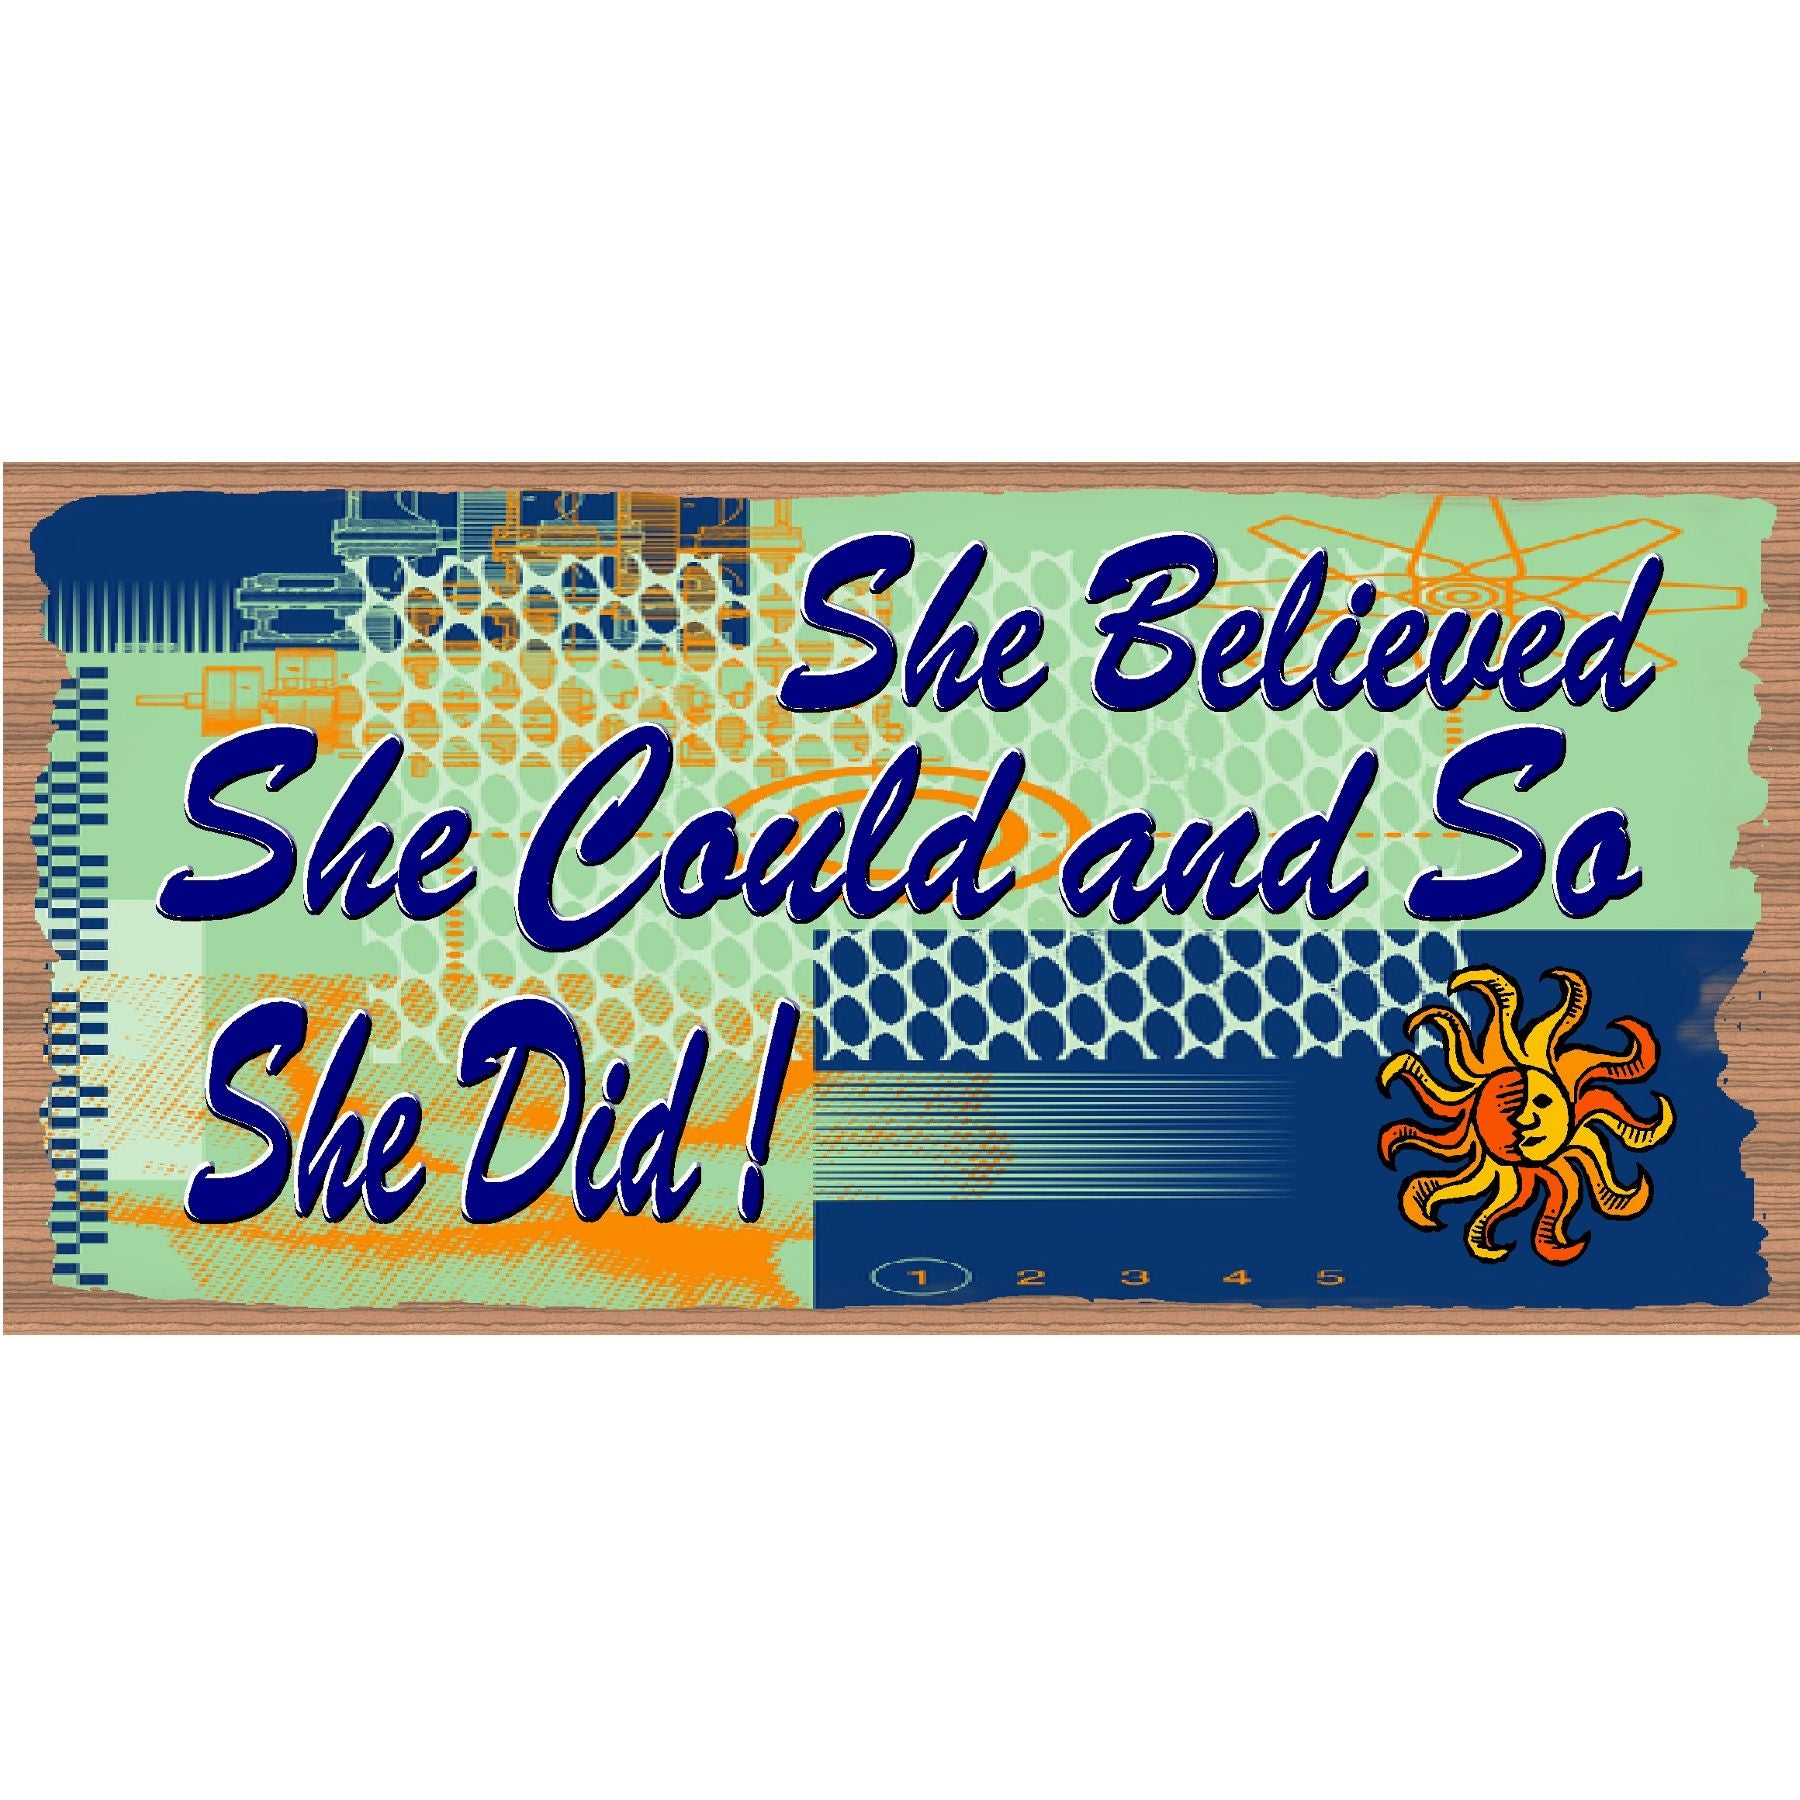 She believed she could inspirational wood sign